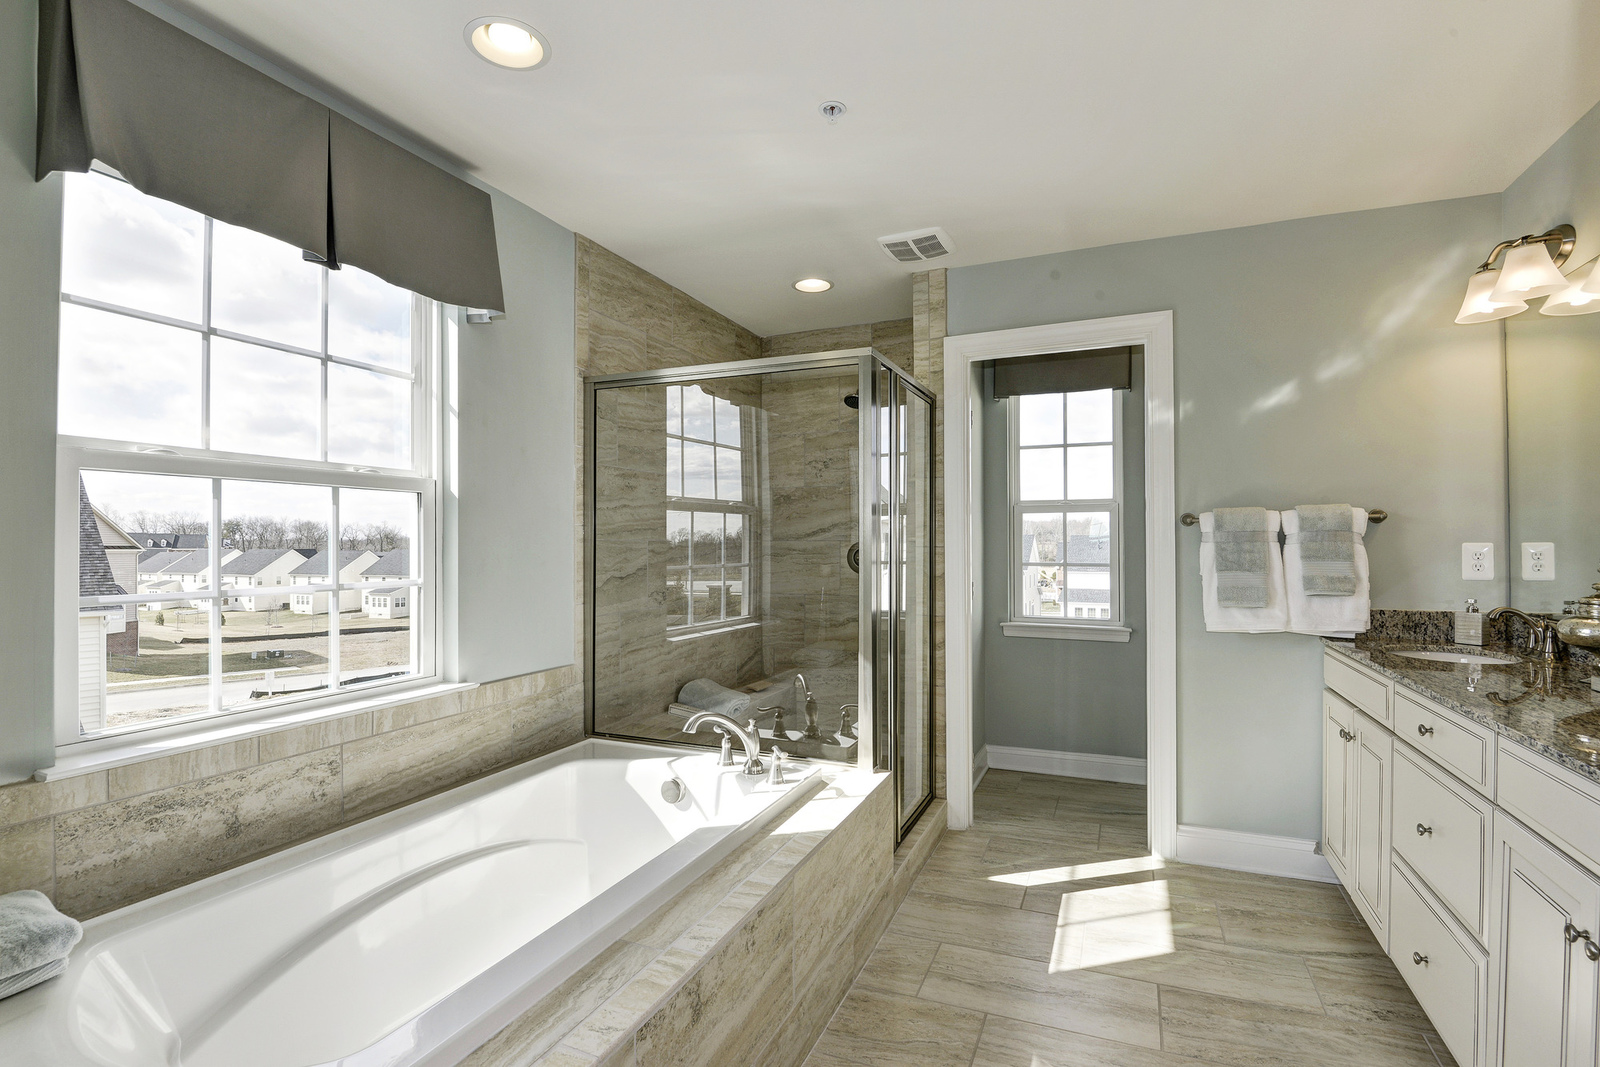 New Homes For Sale At The Preserve At Salt Creek In